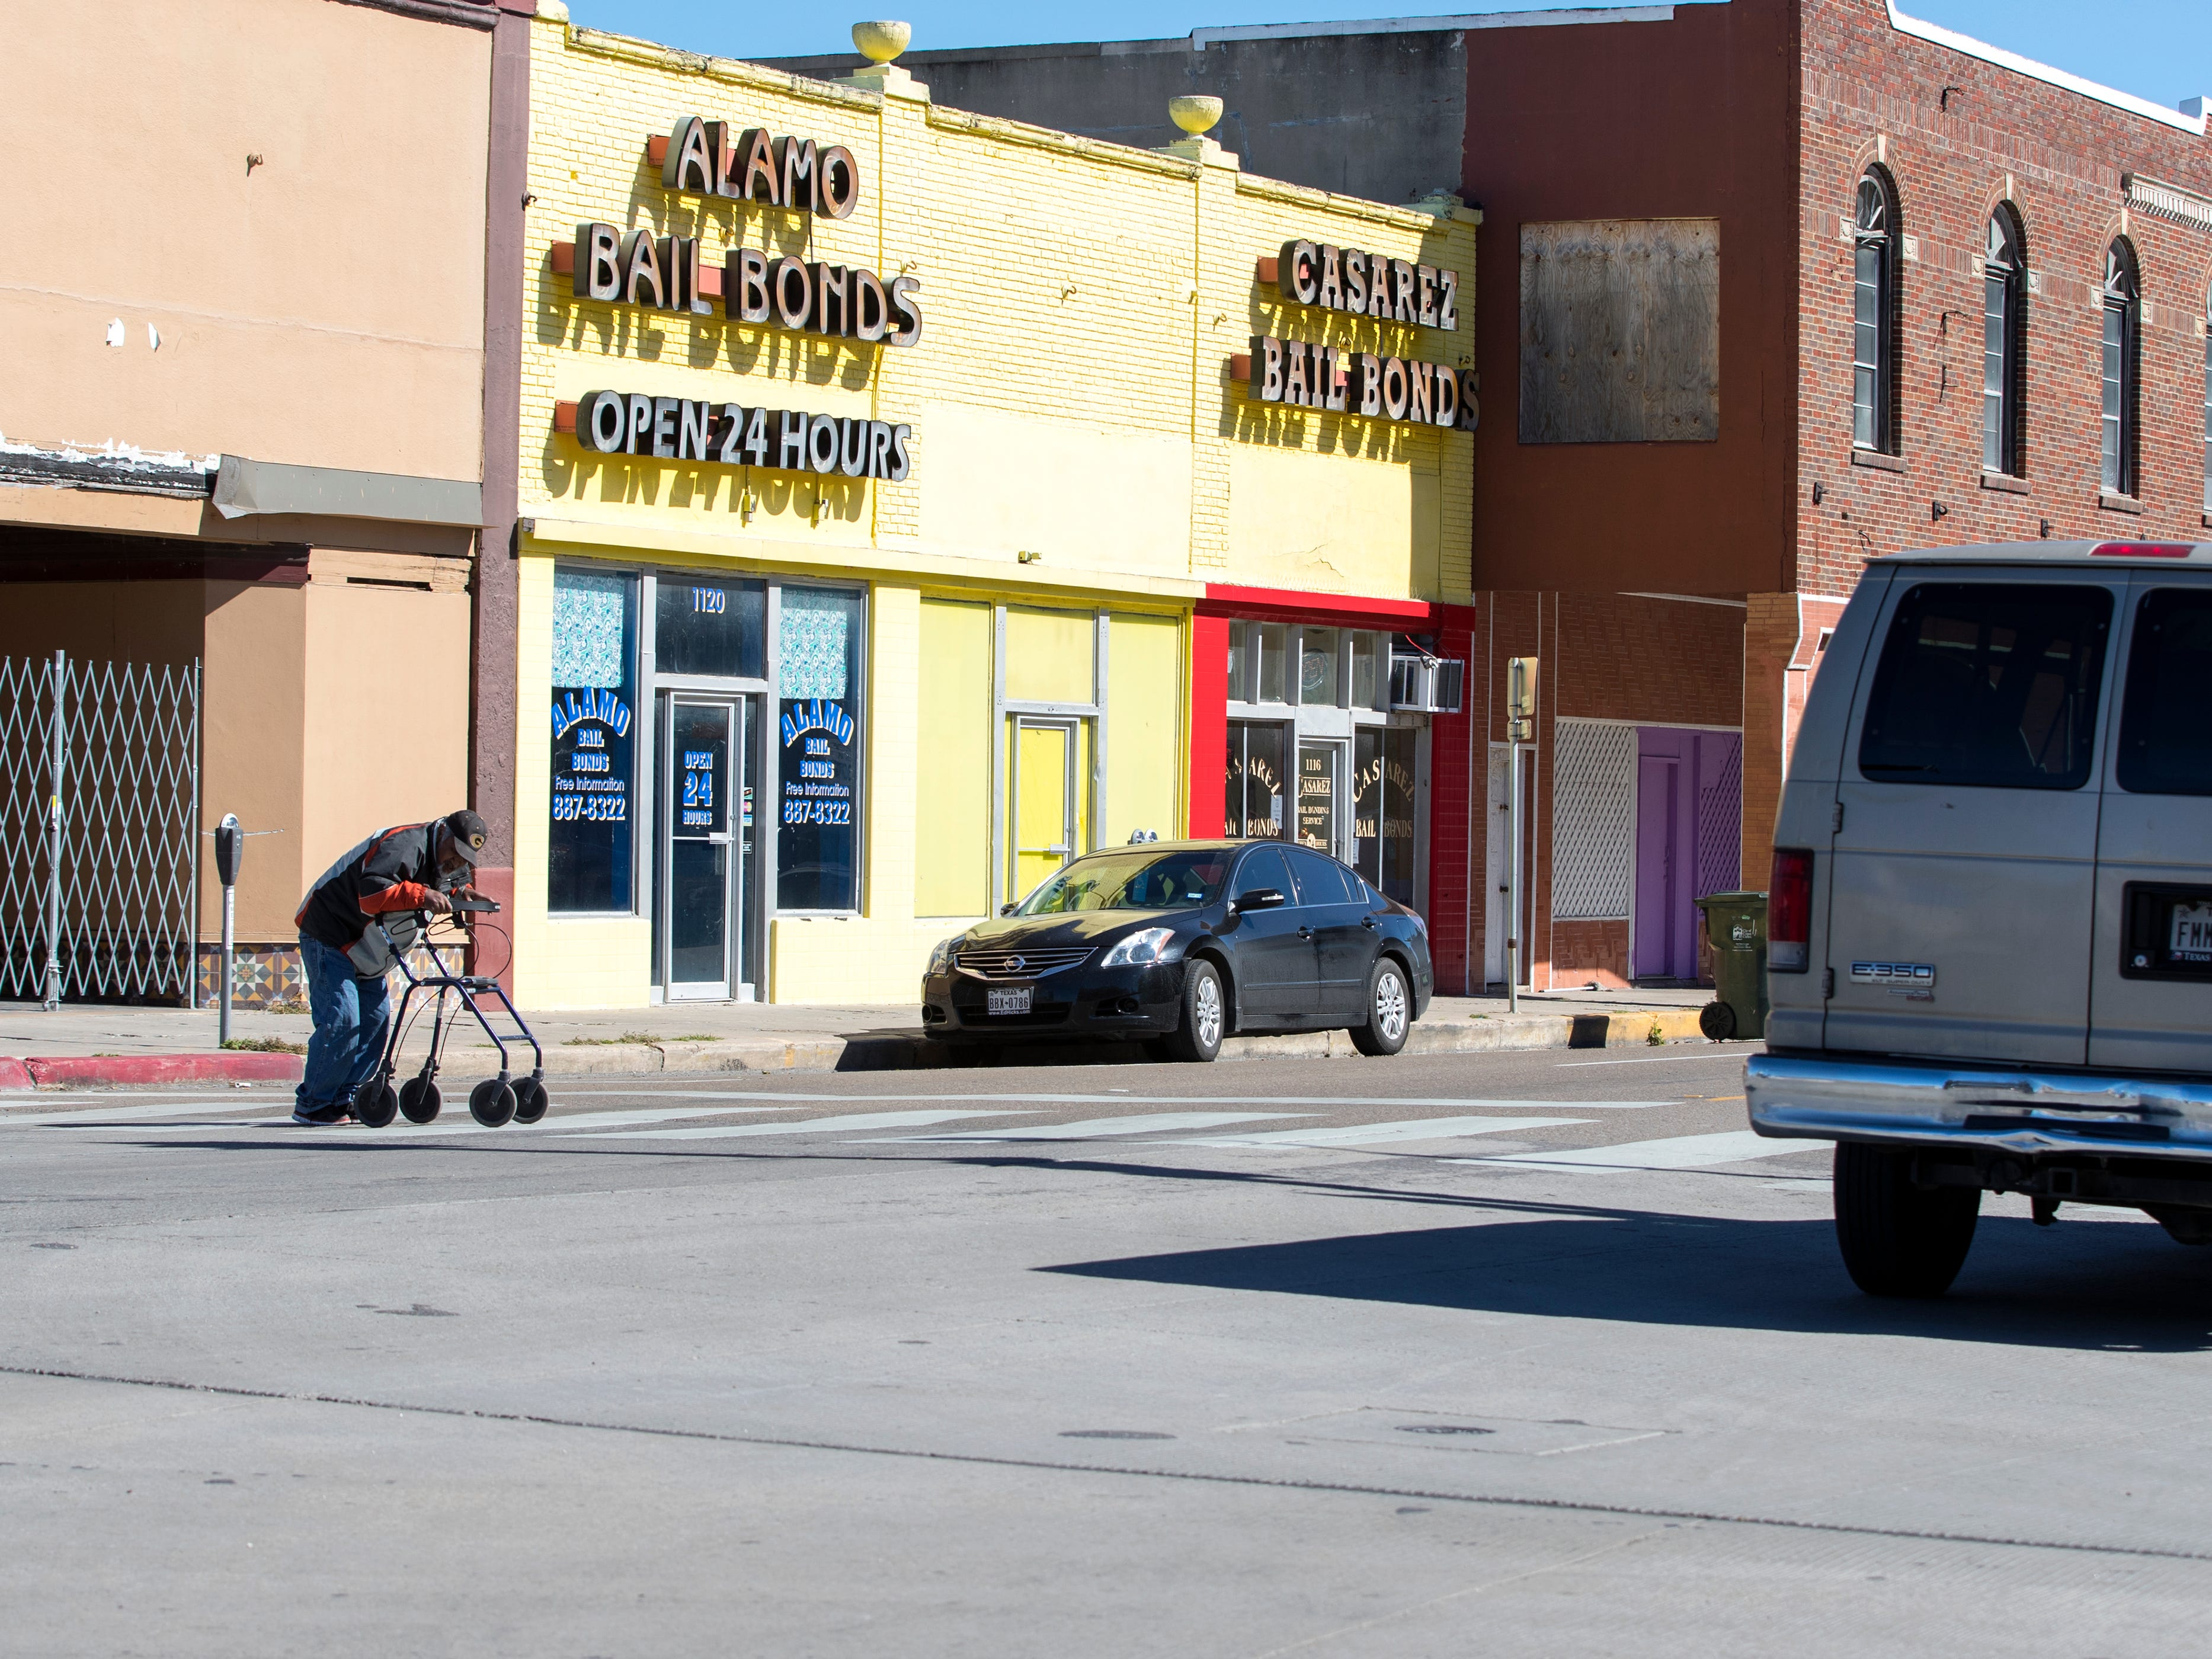 A man crosses in a crosswalk against the light in the 1100 block of Leopard Street on Tuesday, January 29, 2019. Statistics from the Corpus Christi Police Department show that a high number of auto-pedestrian accidents take place in the 1100 block of Leopard Street.